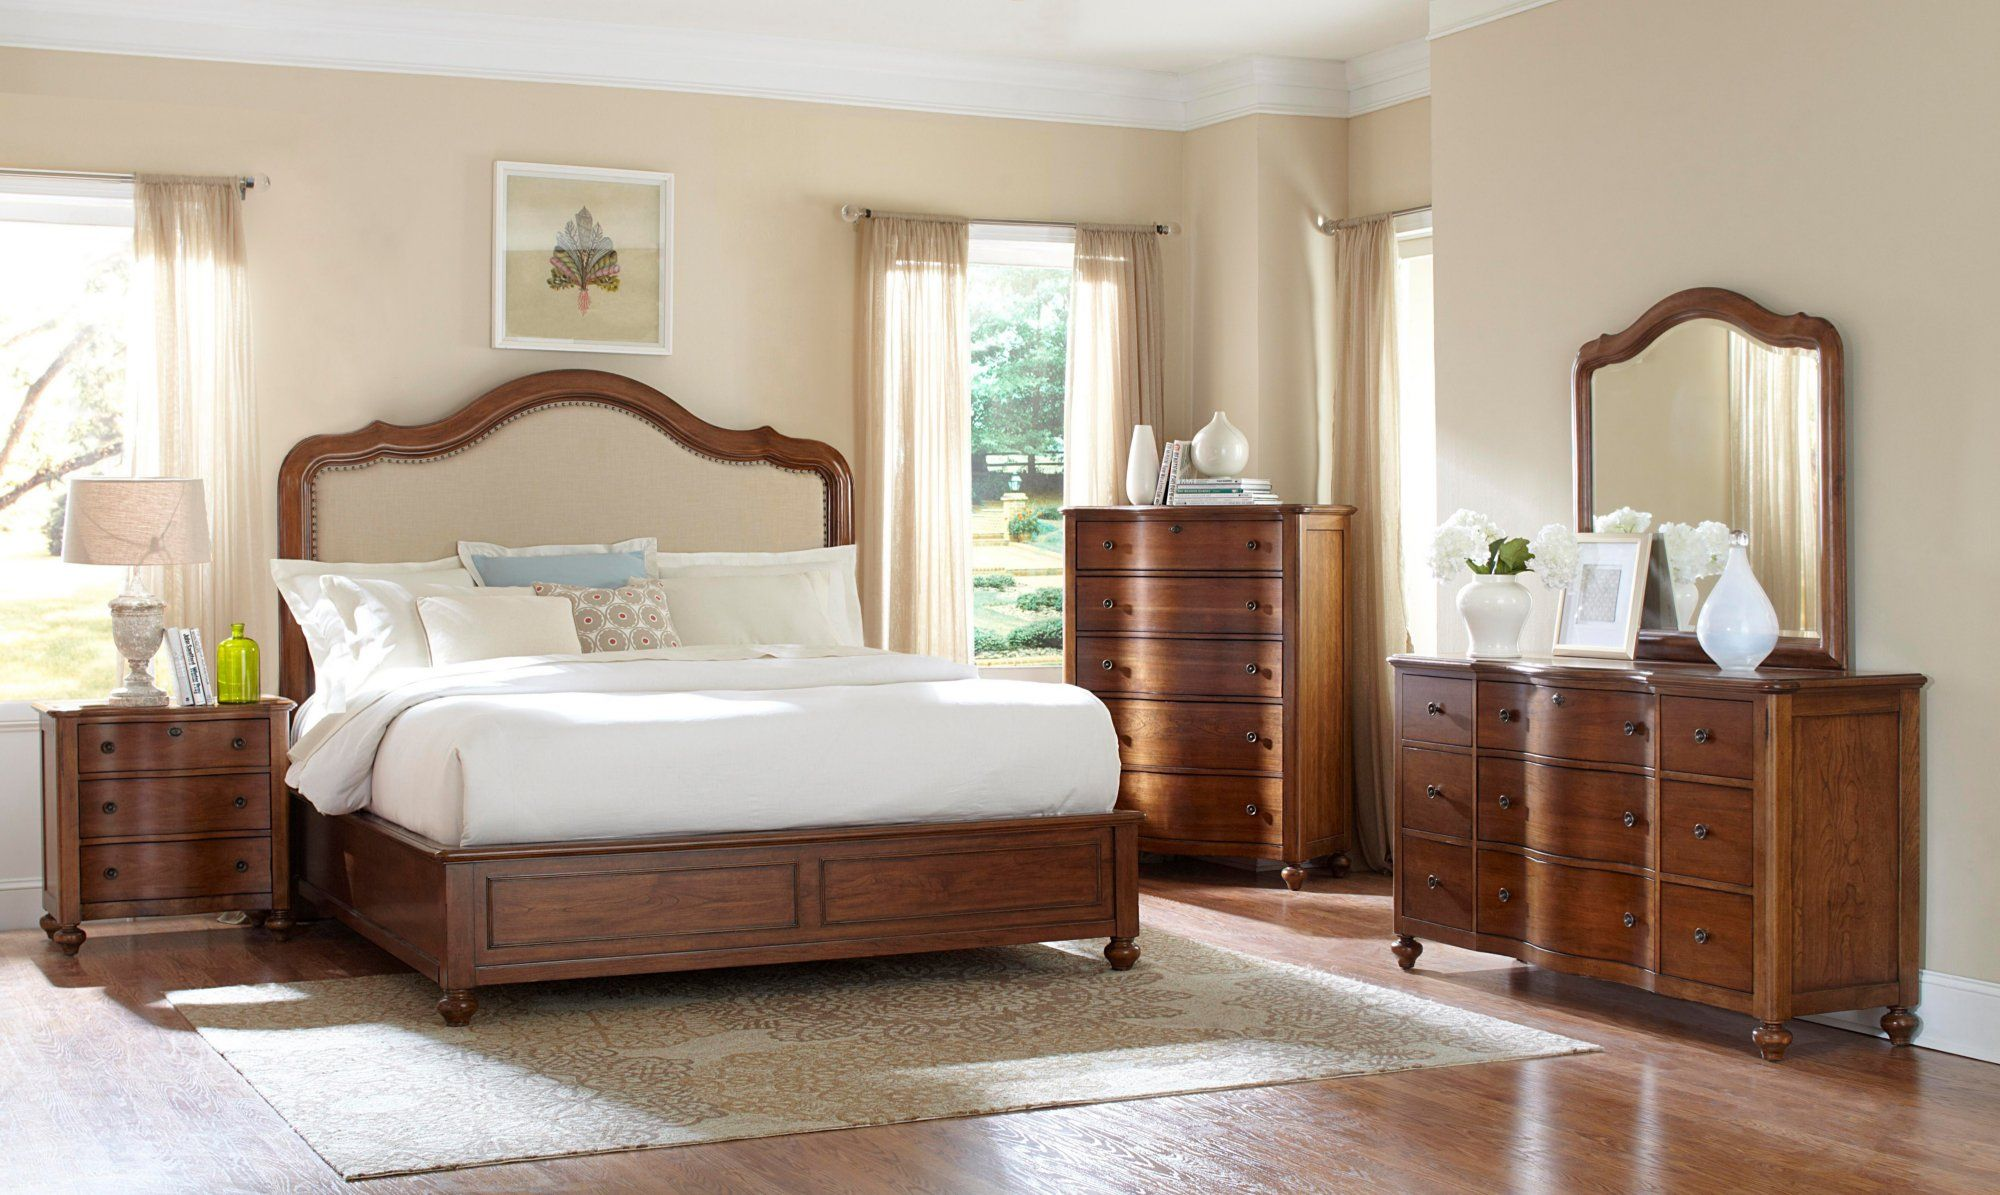 Creswell Bedroom Broyhill Furniture Discontinued Broyhill